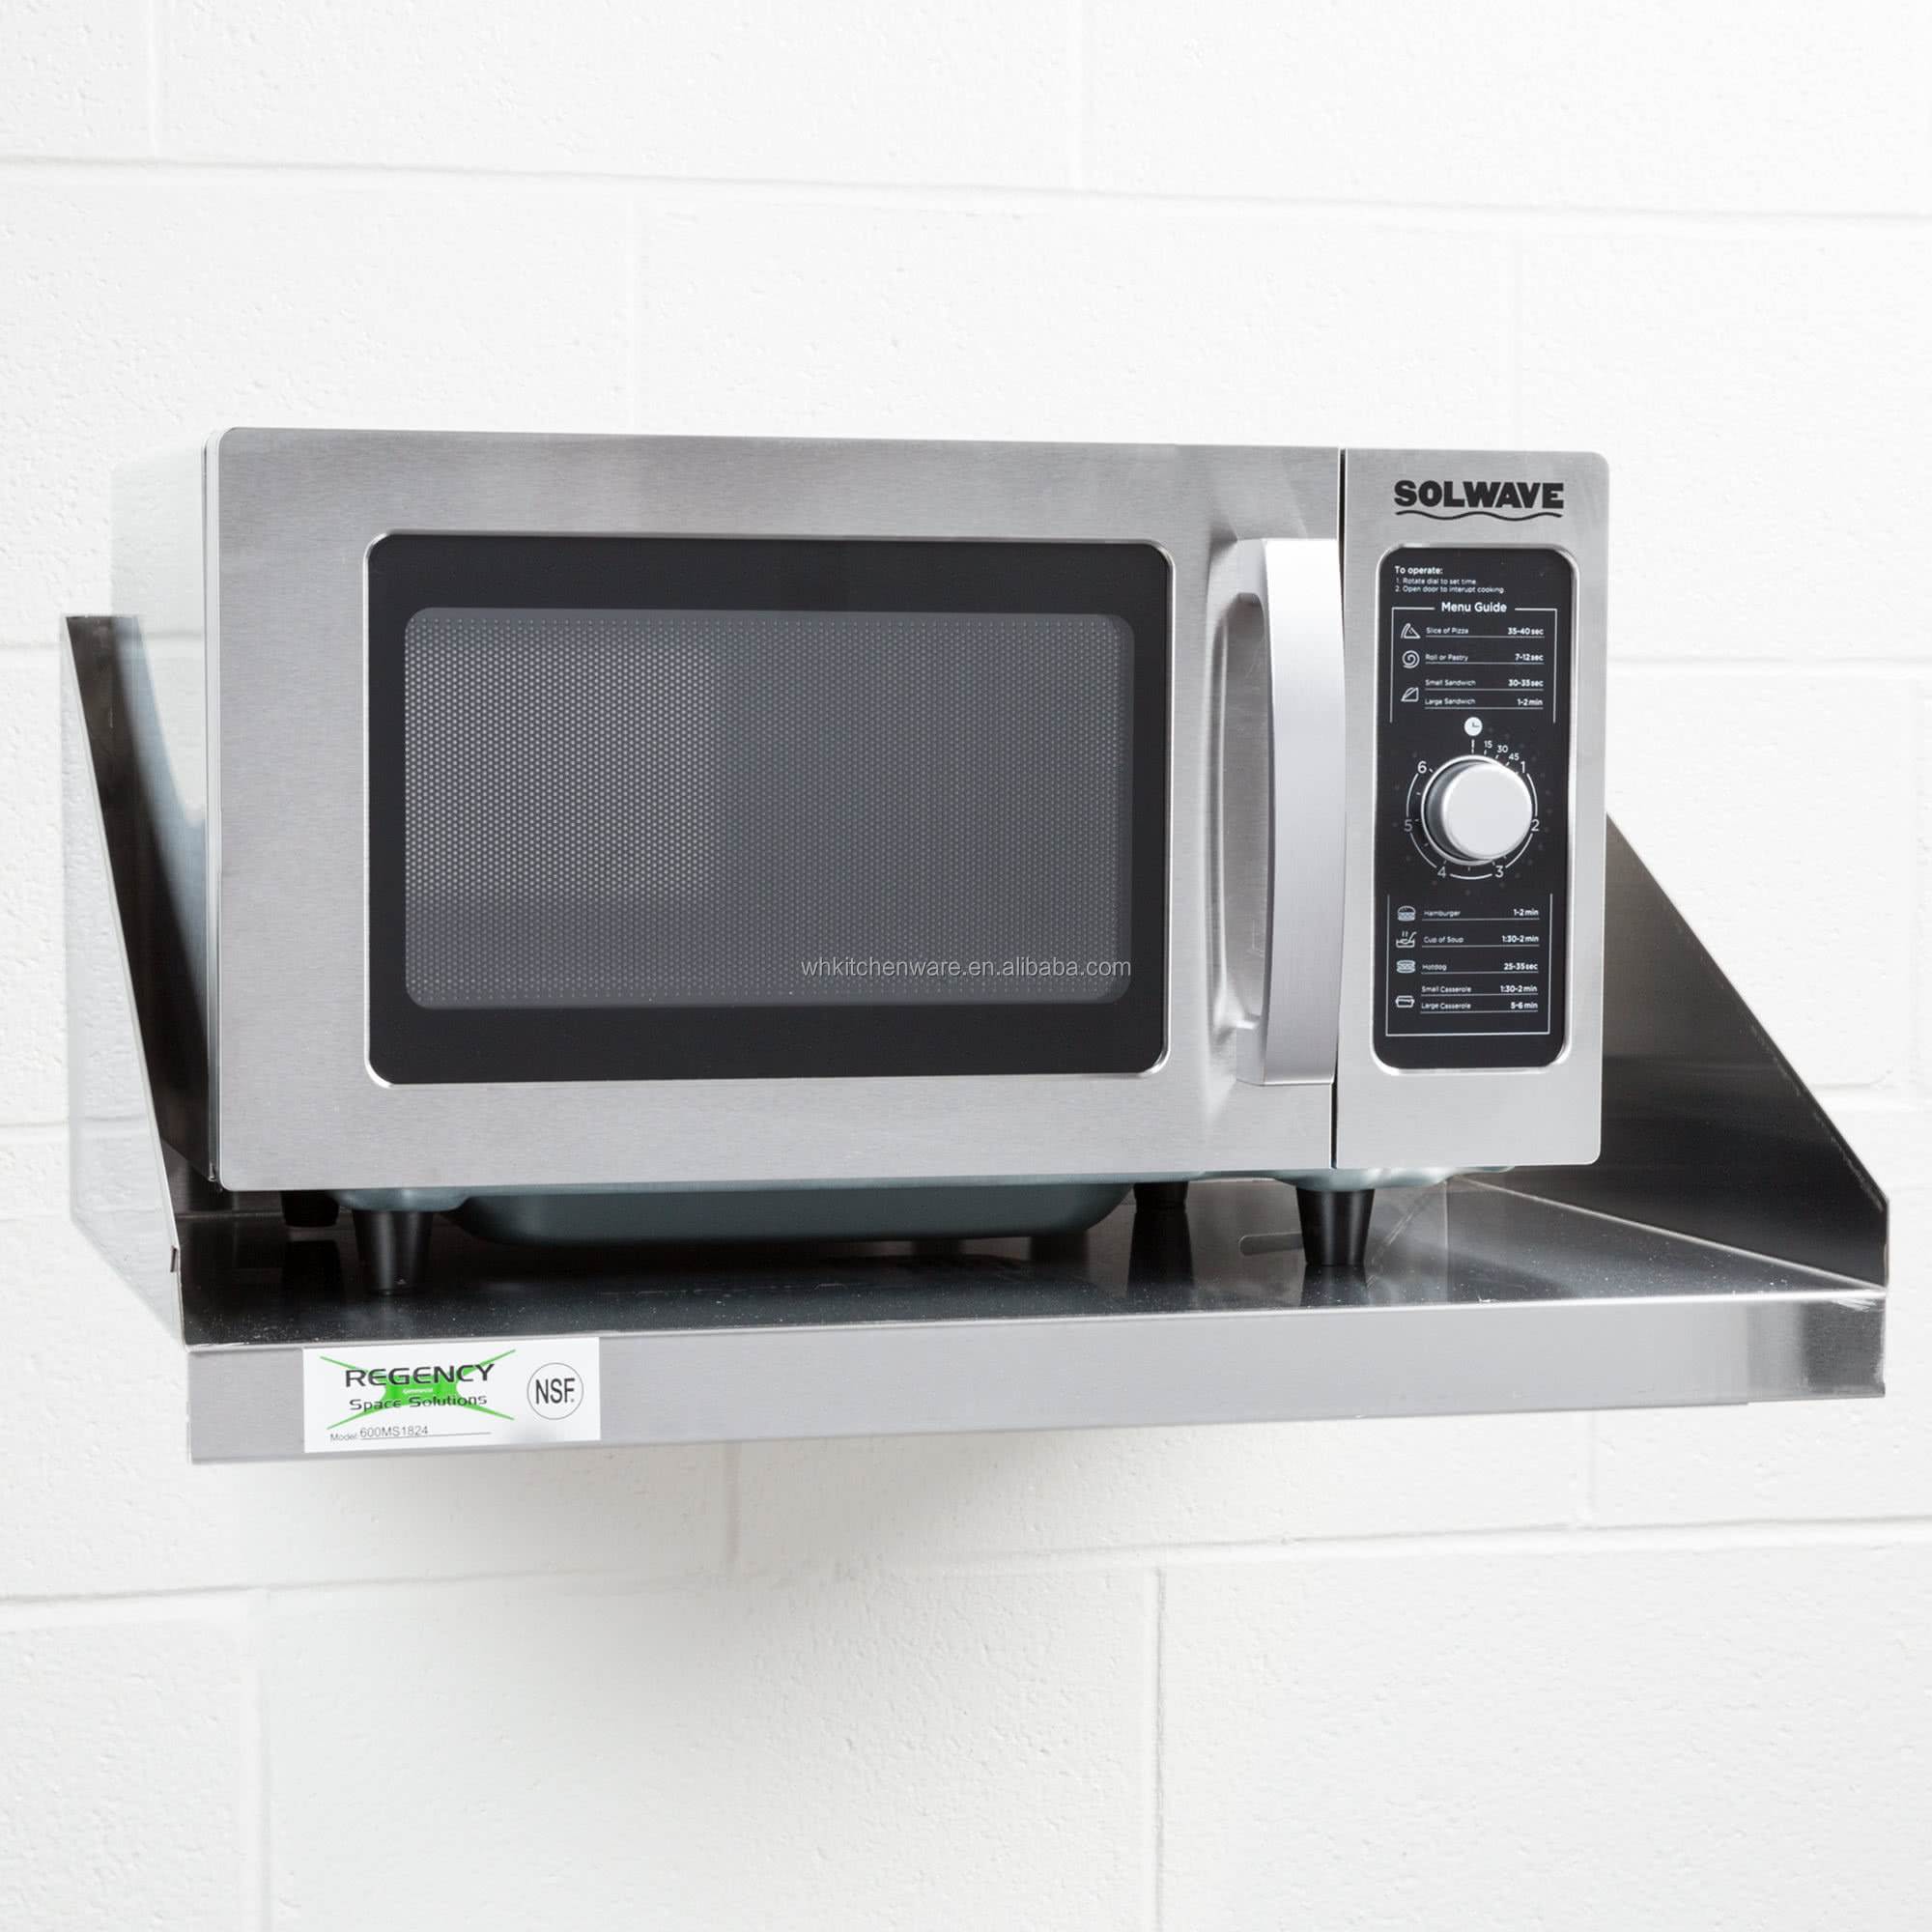 nsf listing different size stainless steel kitchen microwave shelves for restaurant hotel buy microwave shelves microwave shelf kitchen shelf